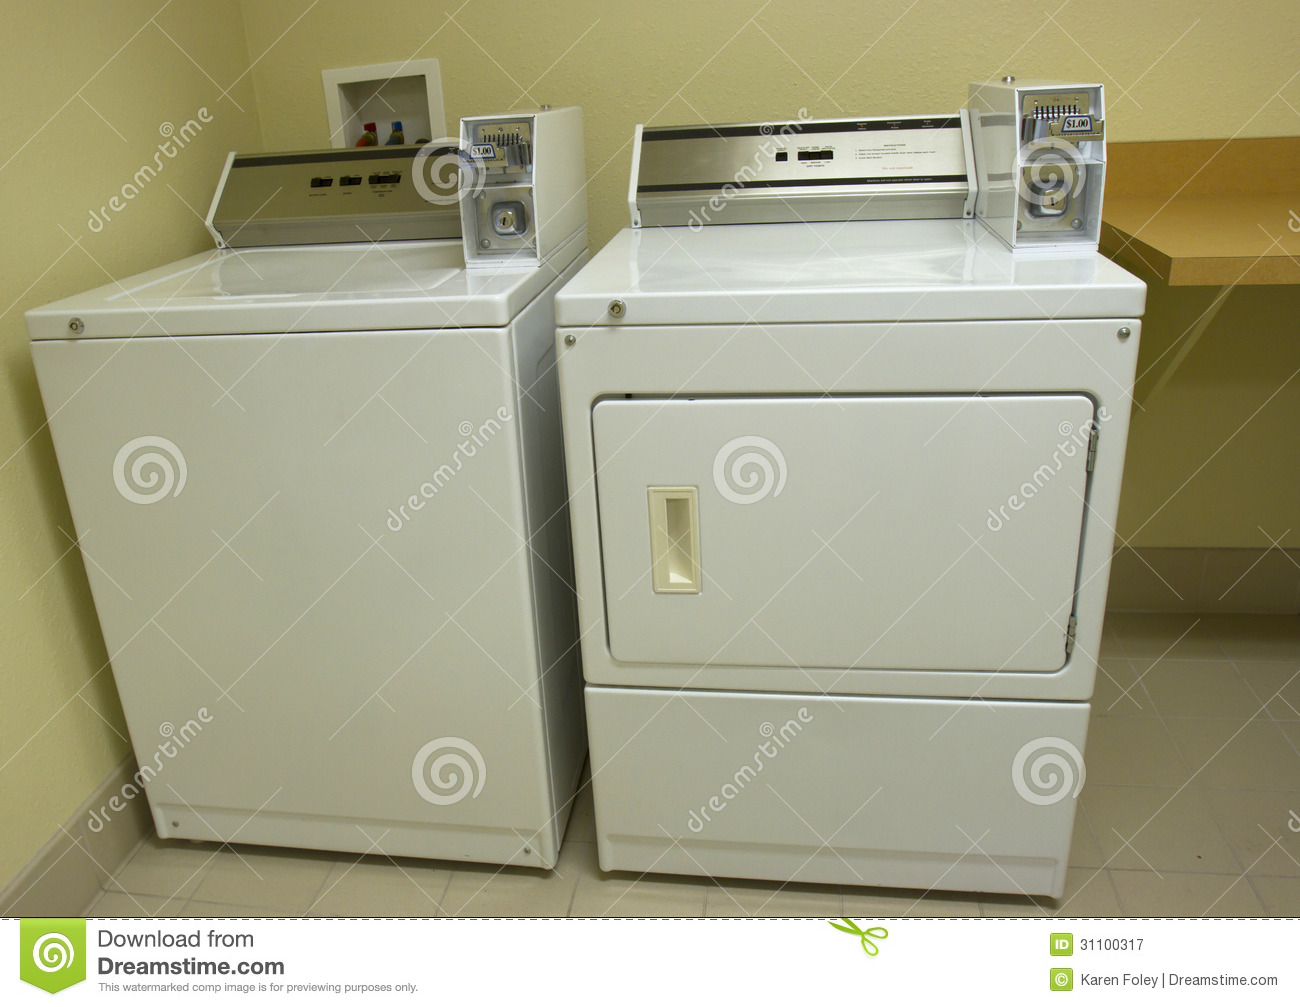 Animated Tumble Dryer ~ Laundromat washer and dryer royalty free stock photography